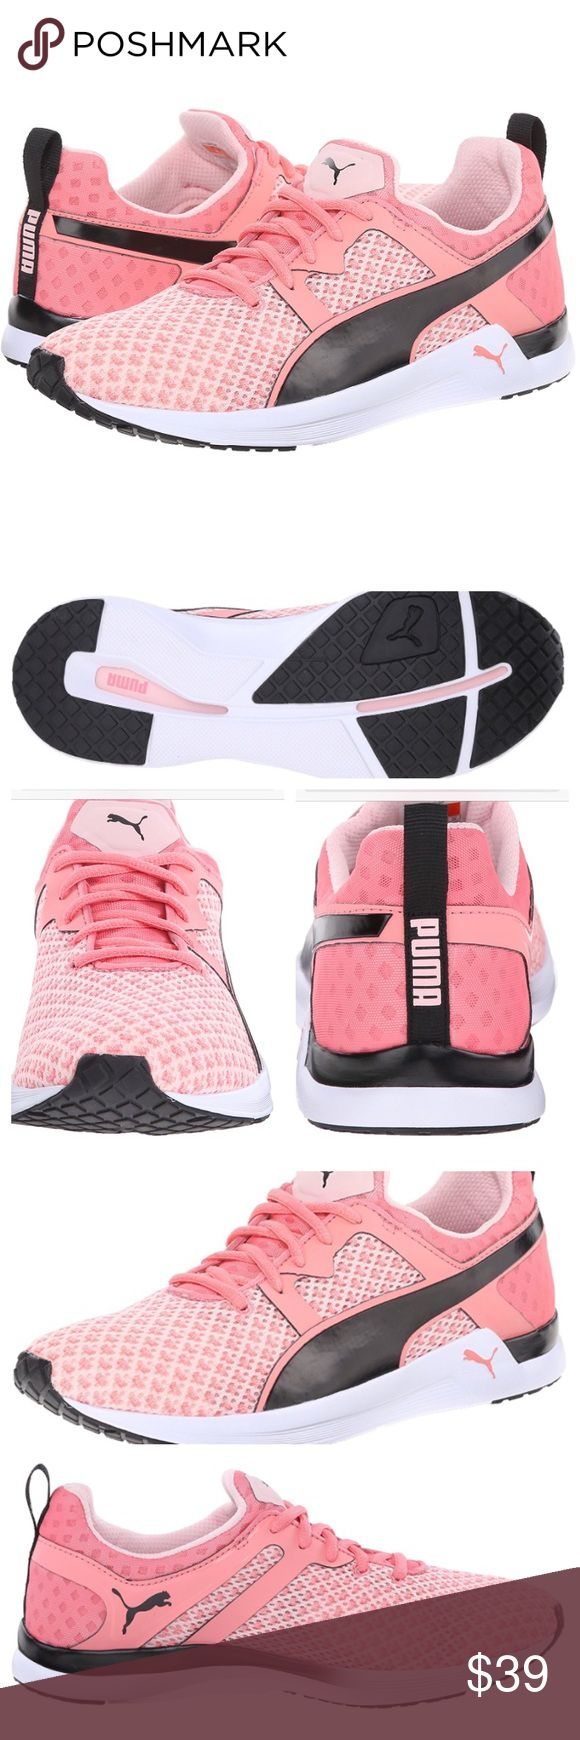 Puma Pulse XT Geo Cross-Training Shoe Pink Pulse XT Cross Trainers in Crystal Rose. Womens size 8.5 (US), 6 (UK), 39 (EUR). Like new - worn once for an hour for team photos, slight rubber marks on soles. See pix. Puma Shoes Sneakers